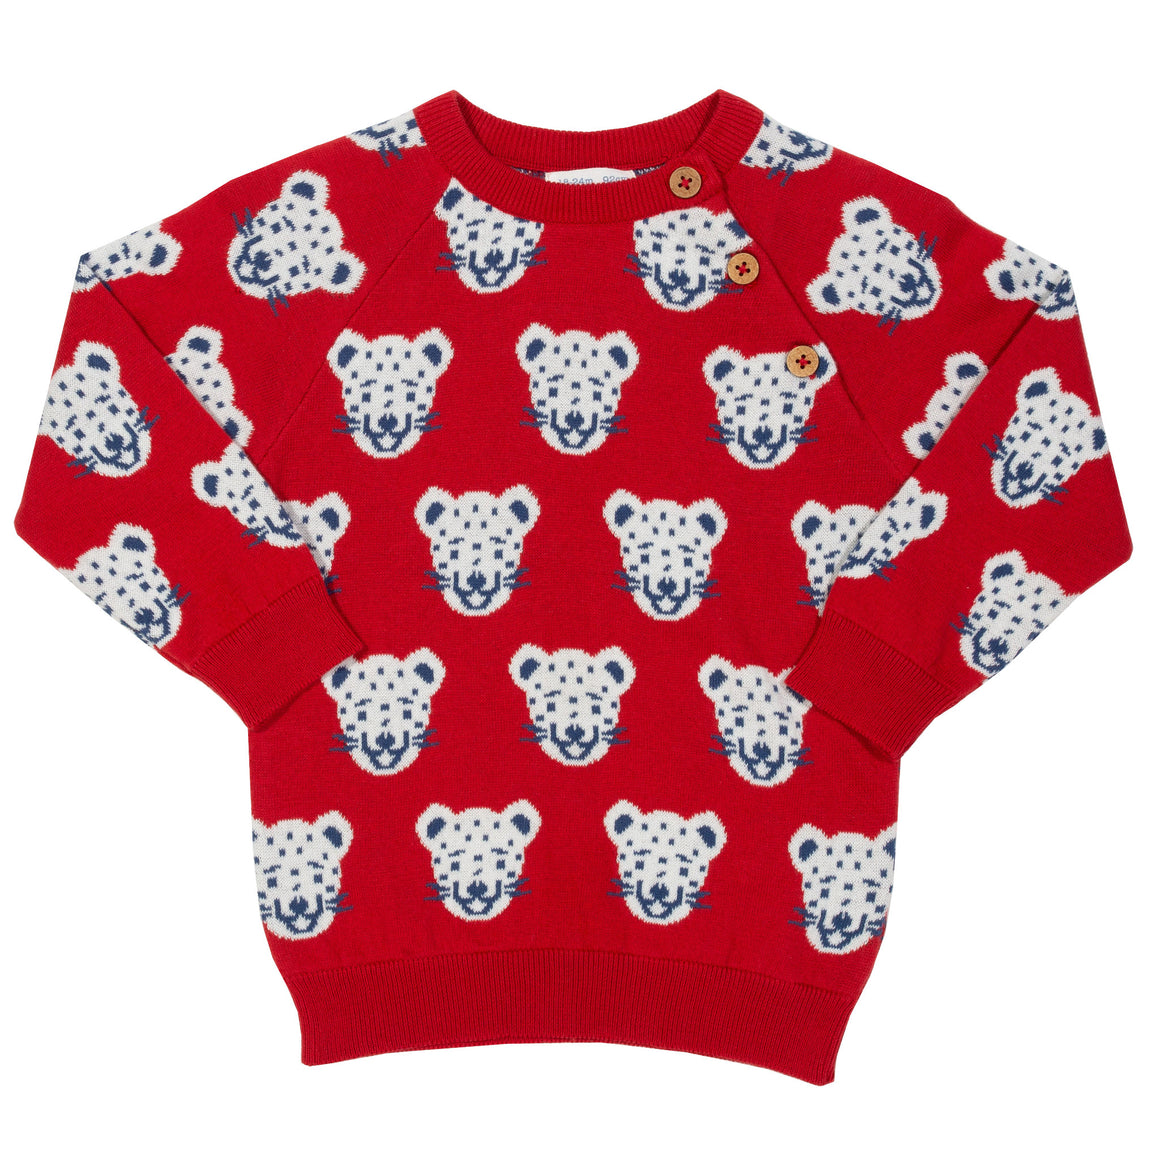 Kite Cool cat jumper